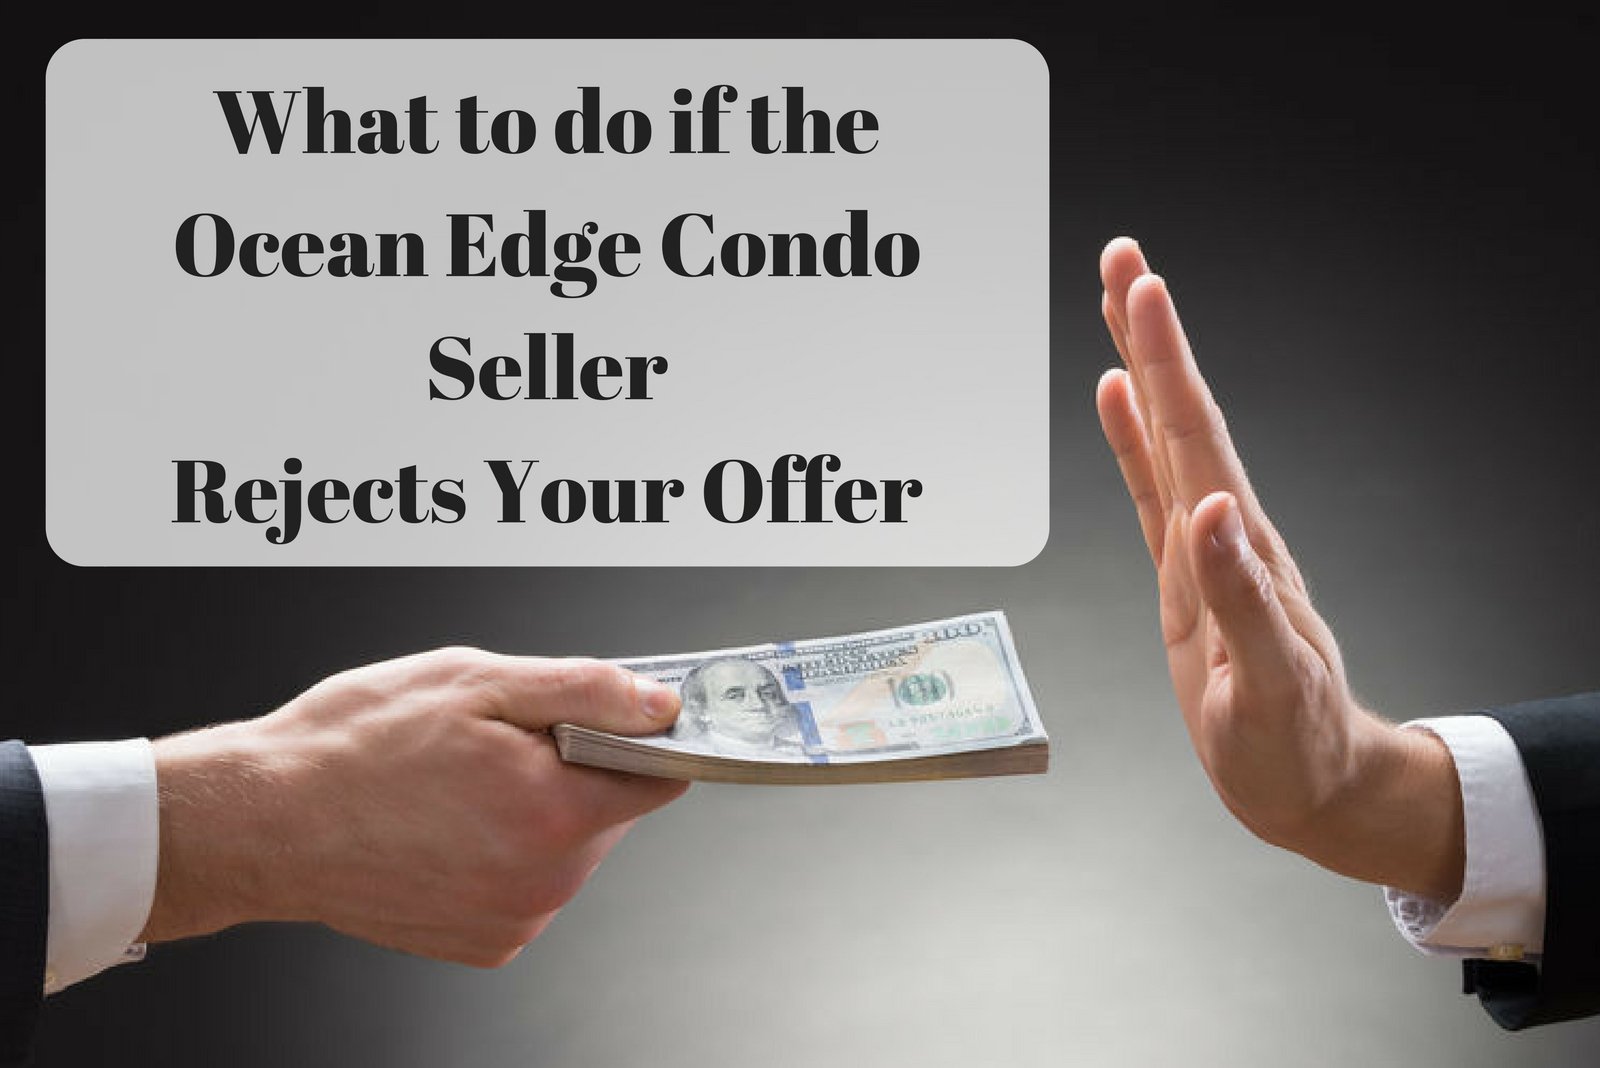 What to do if the Ocean Edge Condo Seller Rejects Your Offer